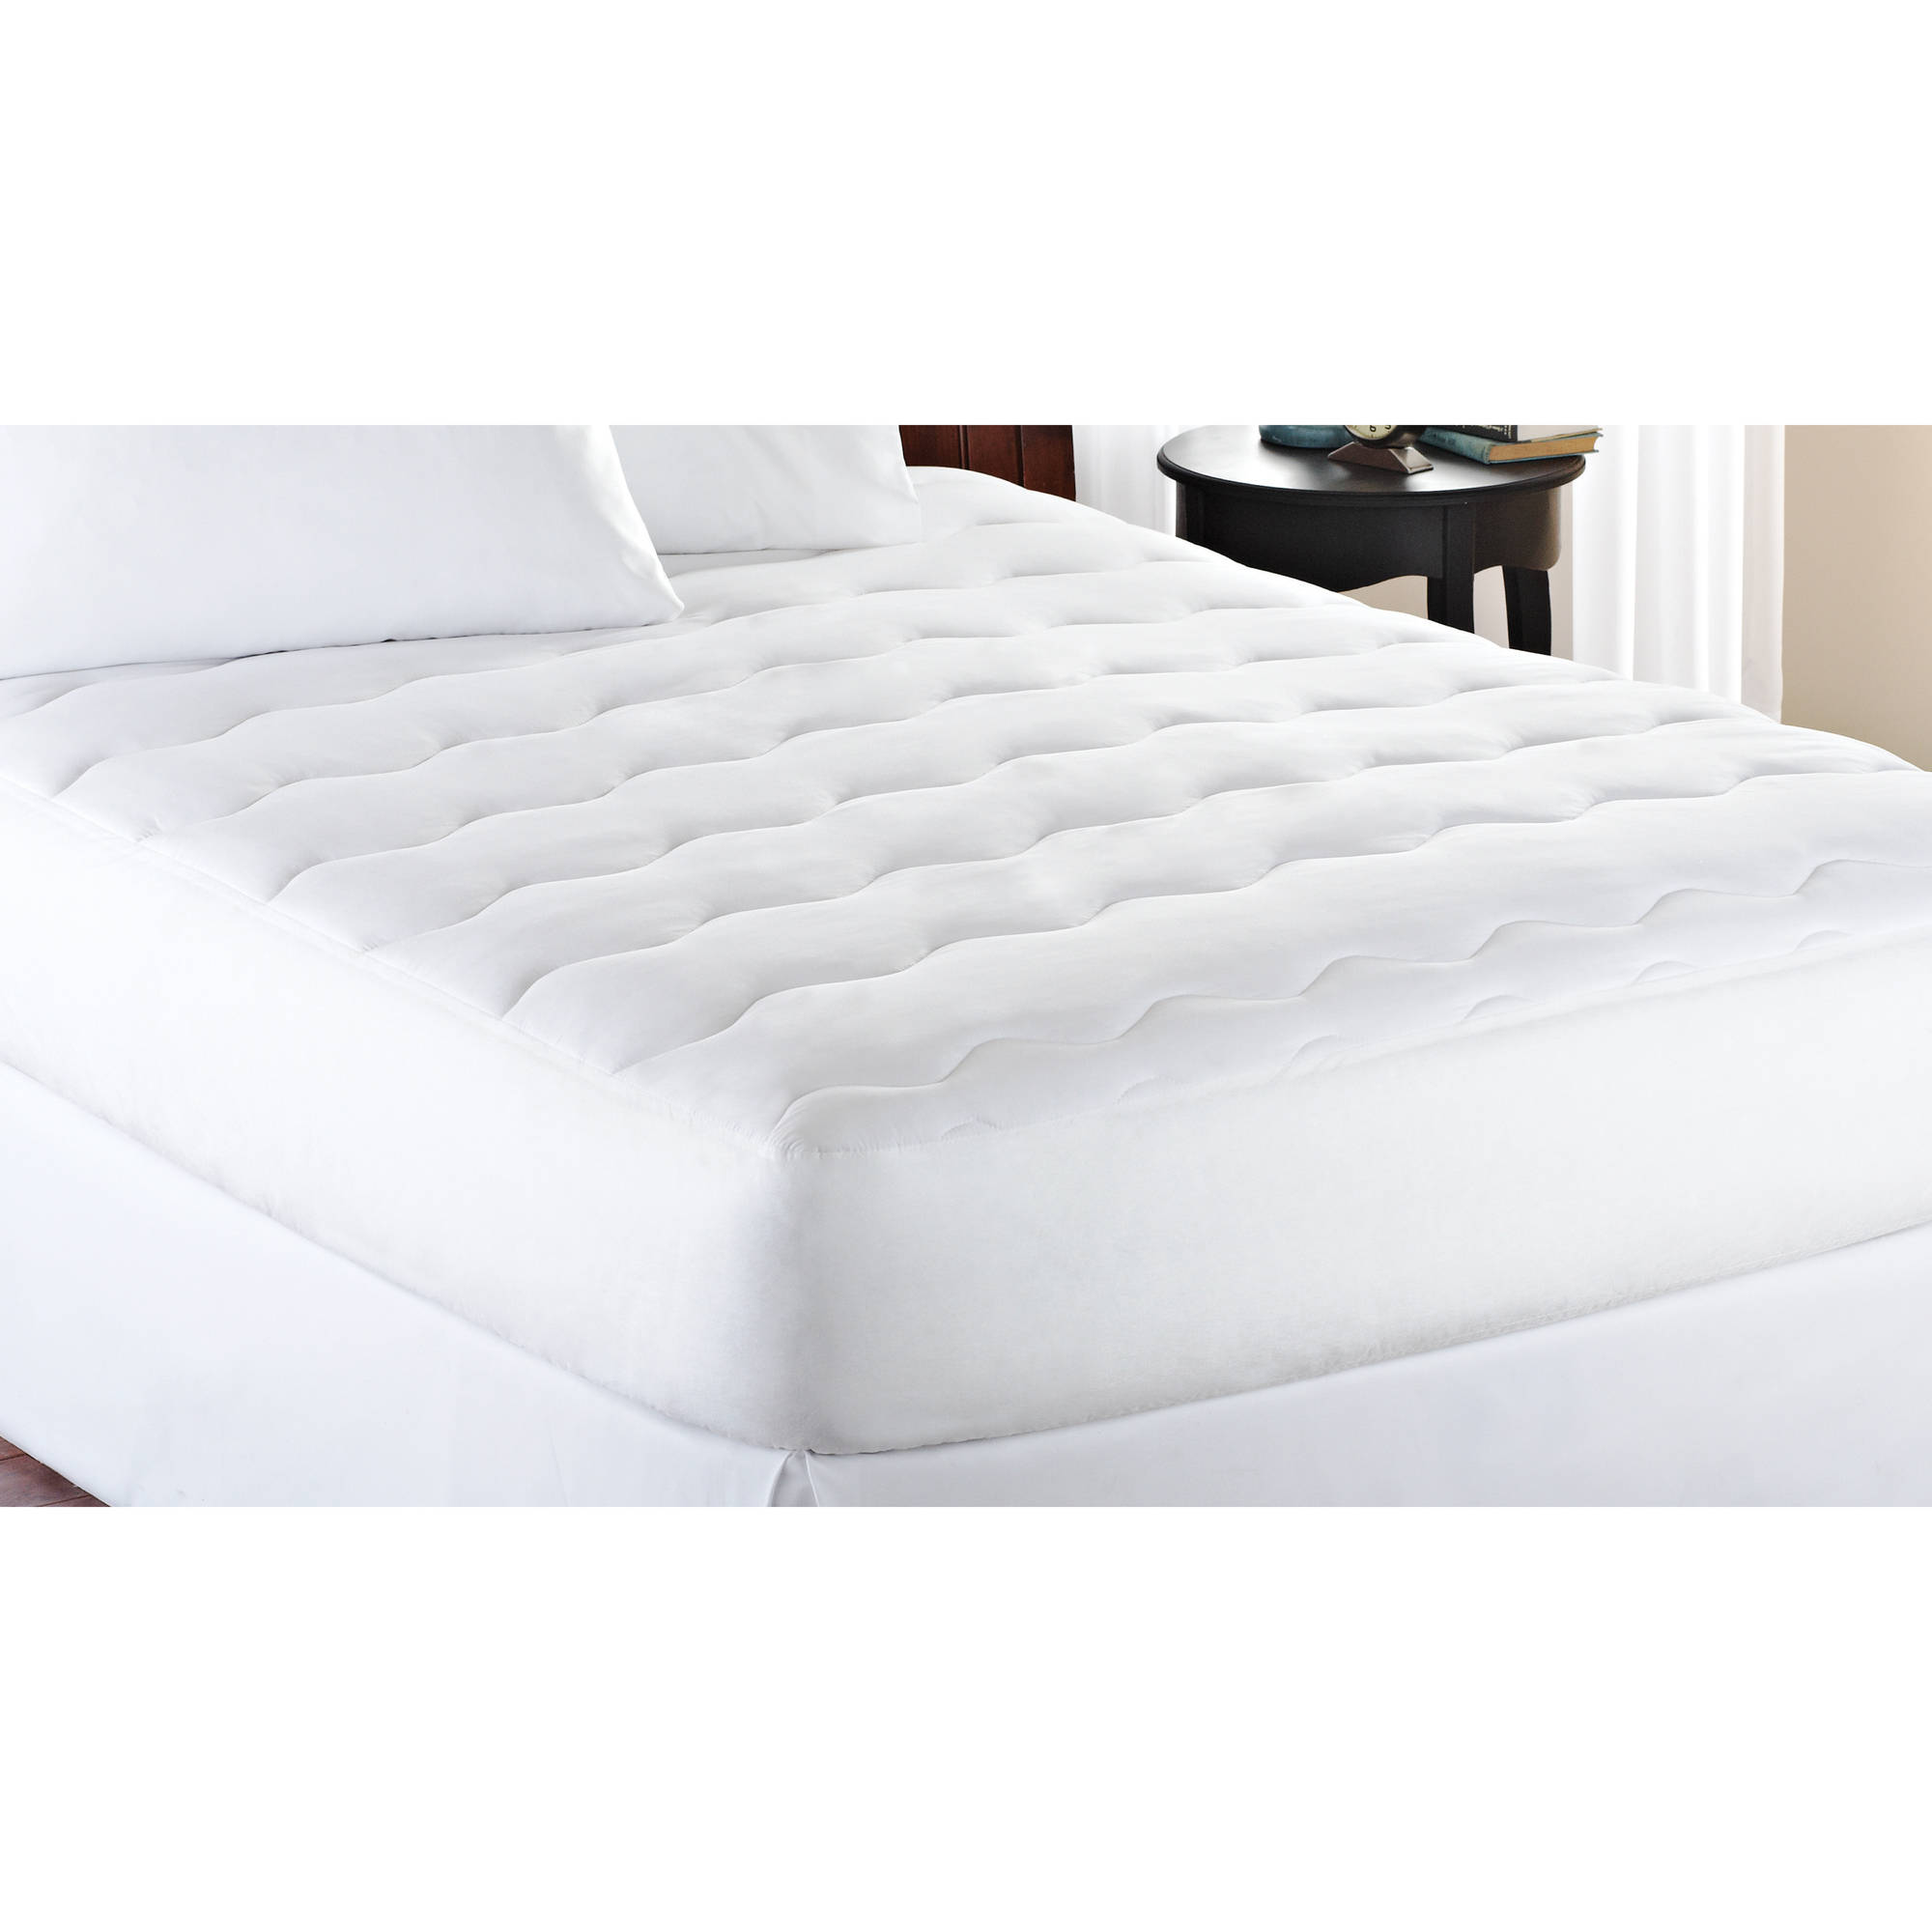 Thin Mattress Topper Mainstays Extra Thick 1 Quot Mattress Pad White Ebay